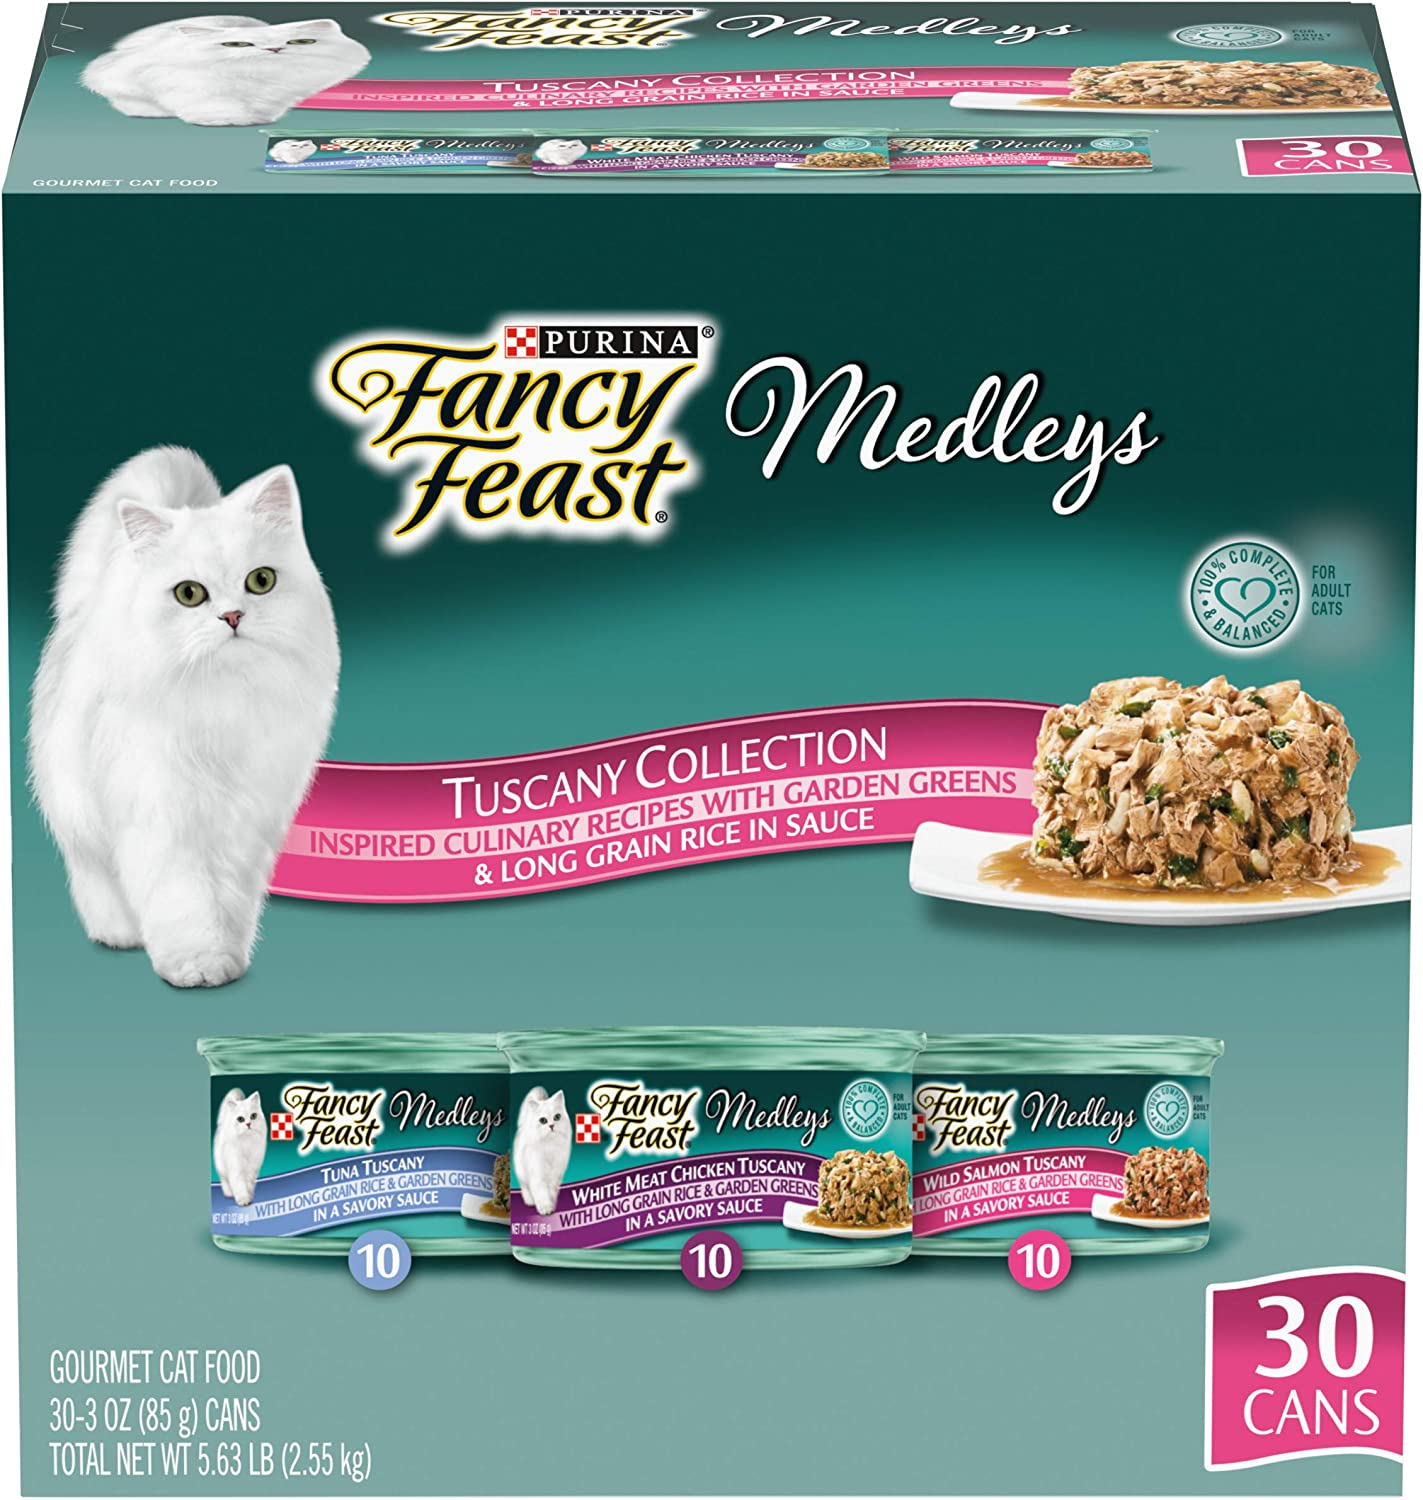 Purina Max 49% OFF Fancy Feast Wet Cat Food Pack Max 51% OFF Co Variety Seafood Medleys